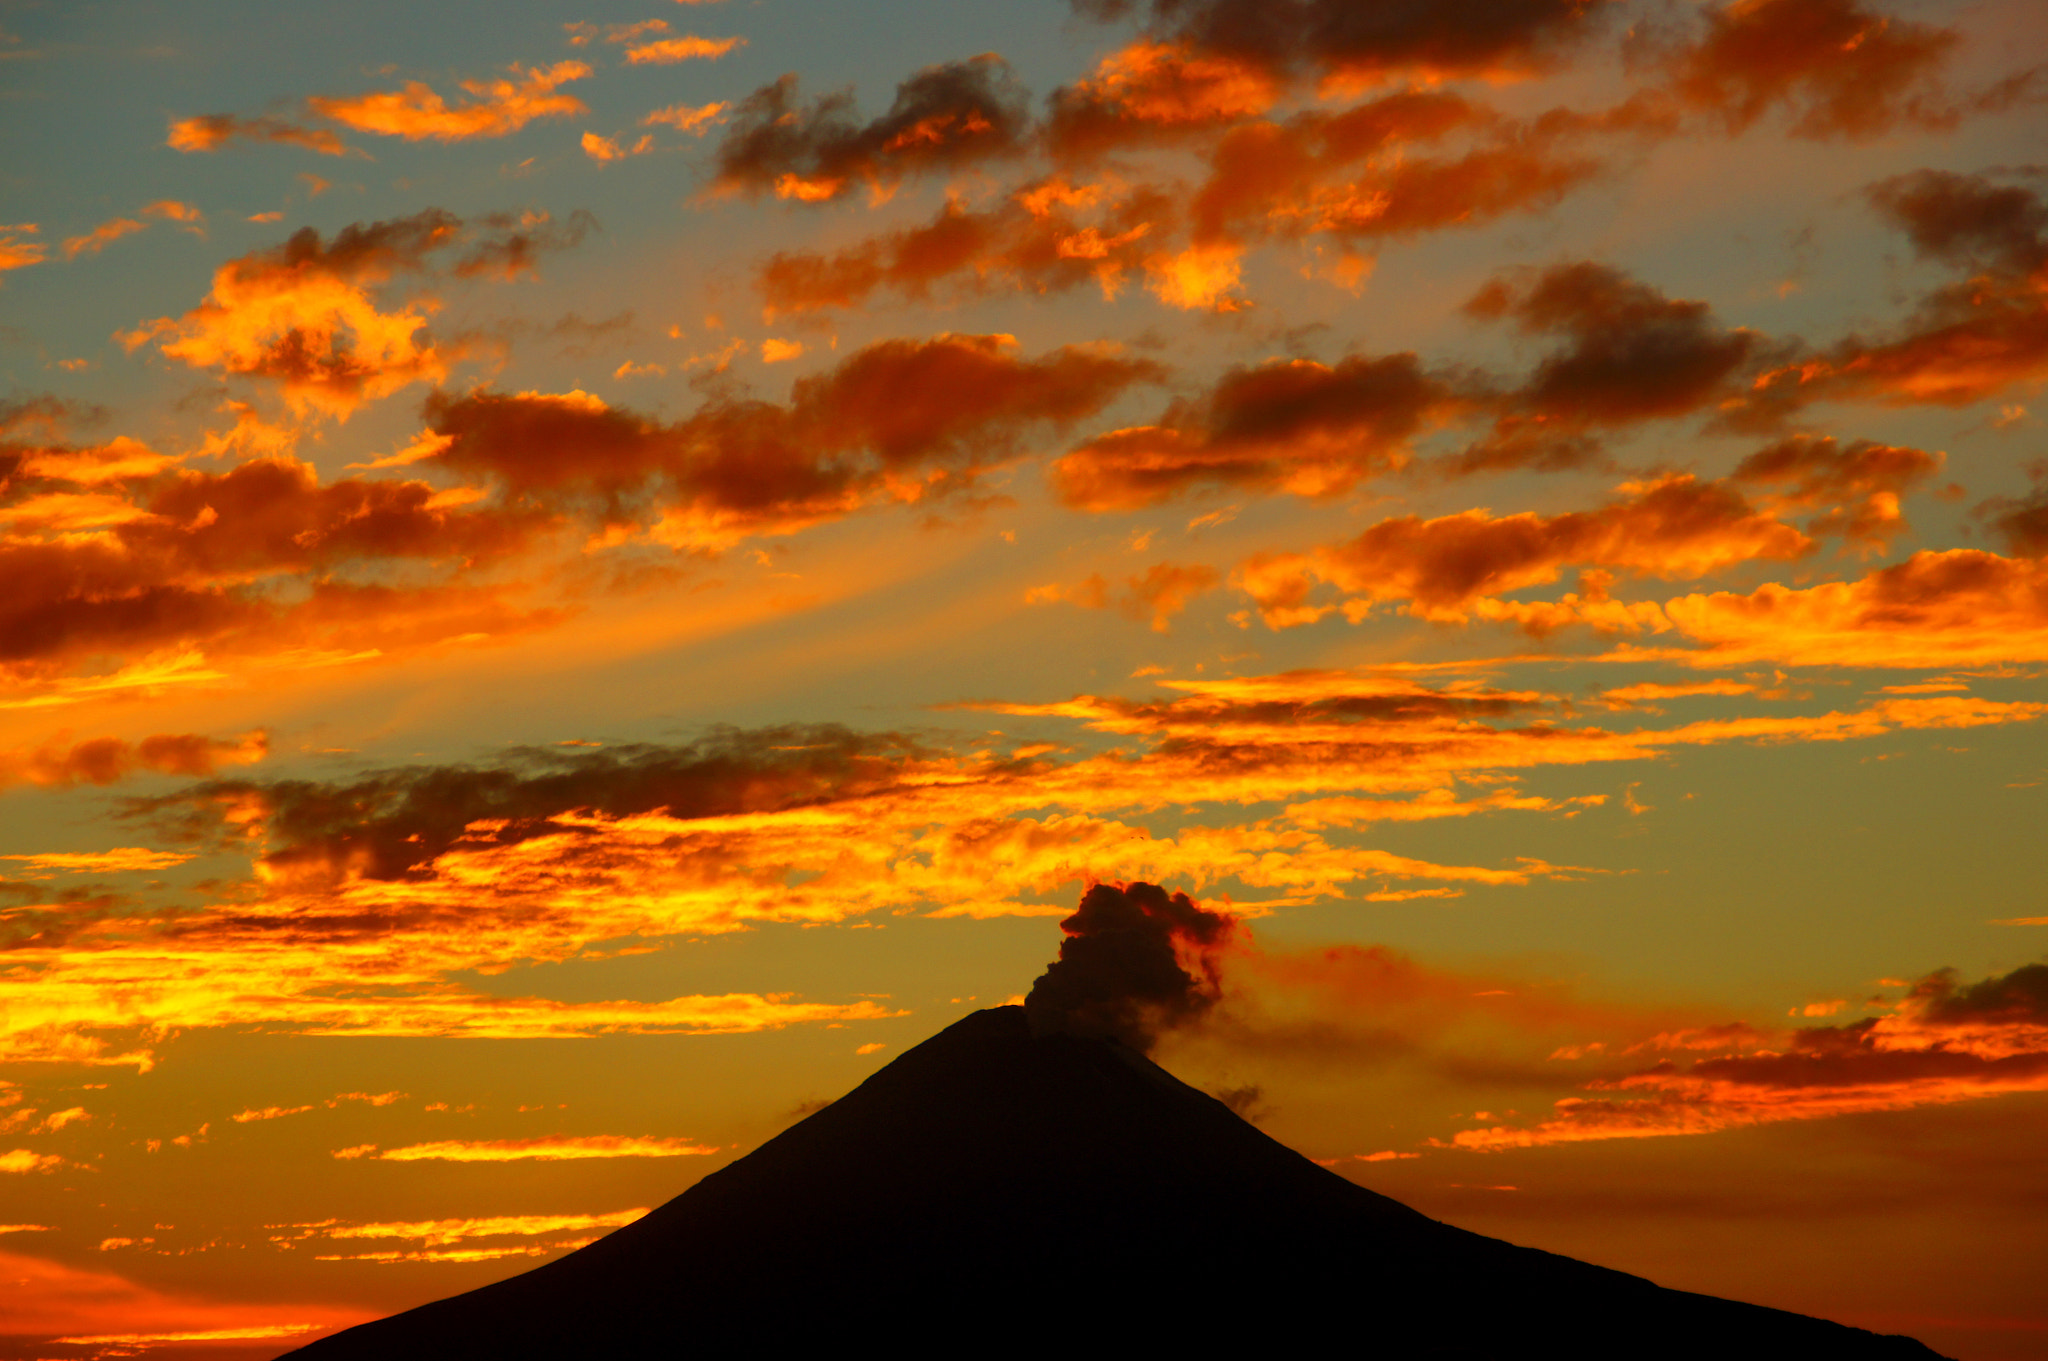 Photograph Volcano by Don Chachi on 500px